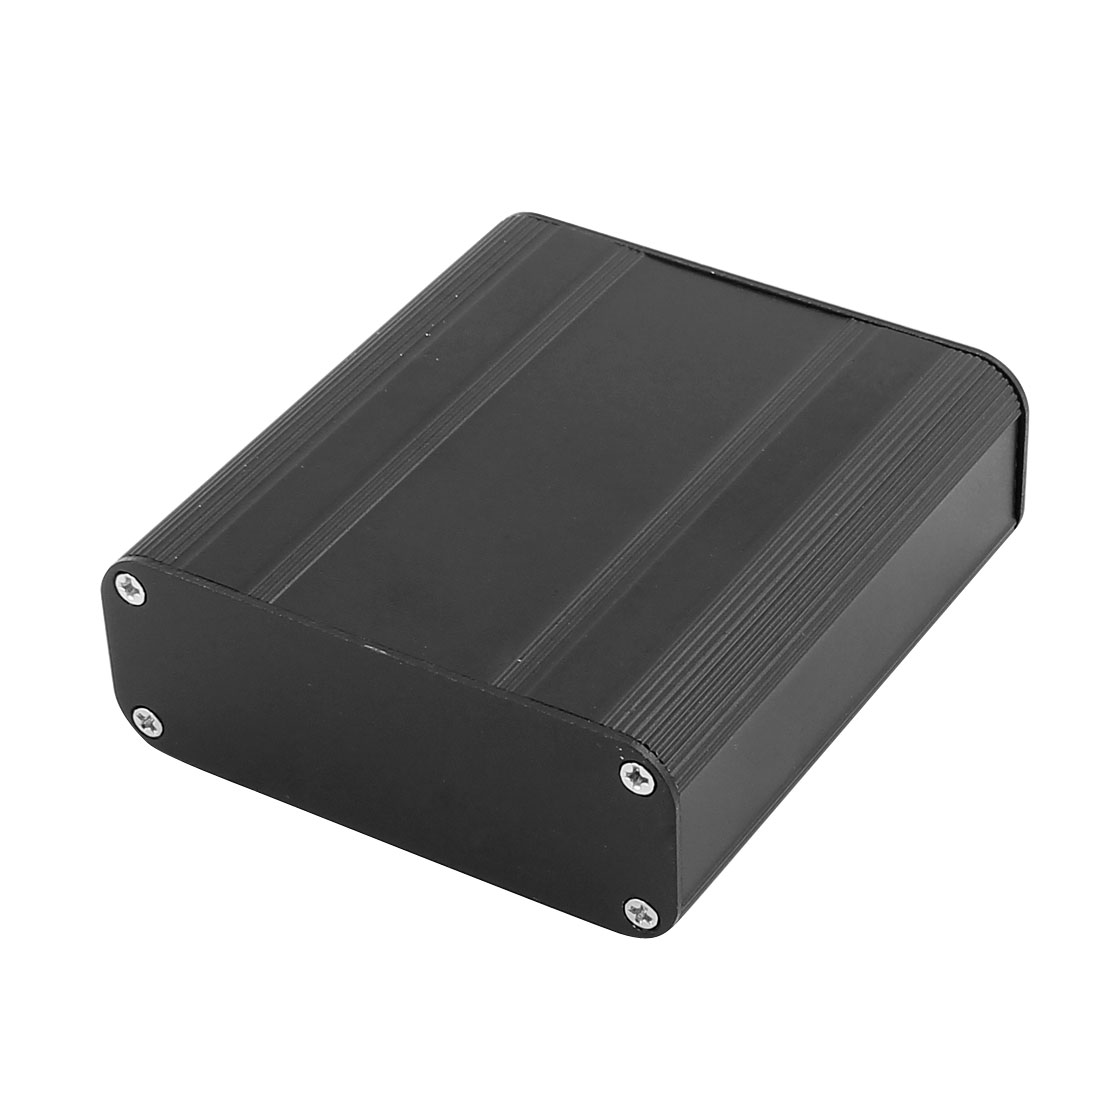 73 x 66 x 25mm Multi-purpose Extruded Aluminum Enclosure Electronic Box Black